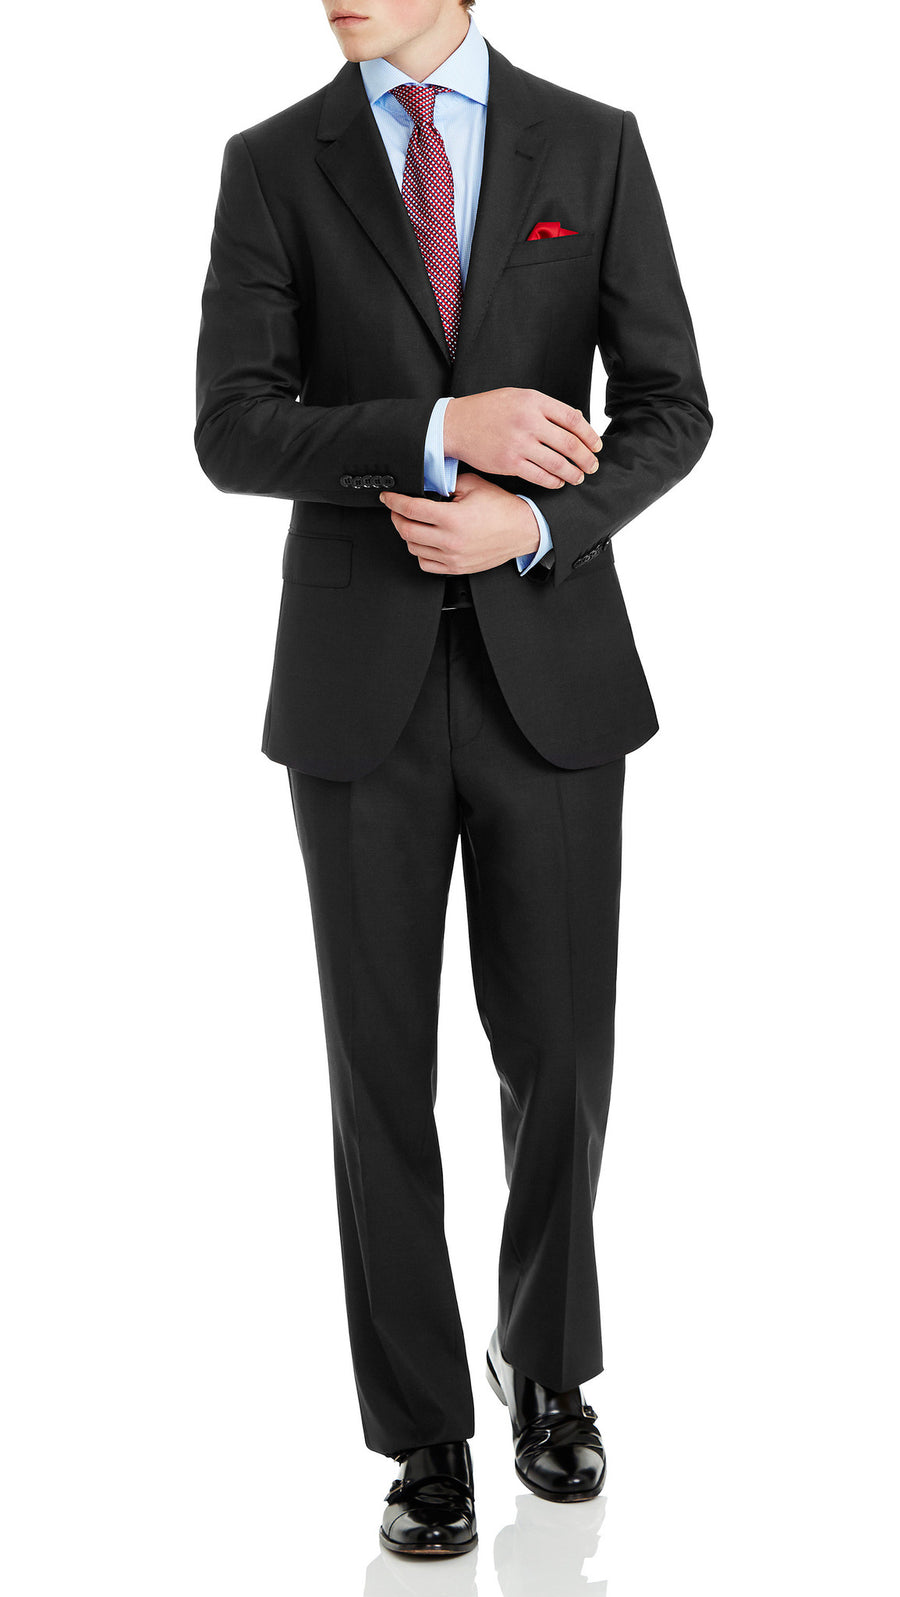 Nicholby & Harvard Super 120's Suit in Charcoal - Ron Bennett Menswear  - 3